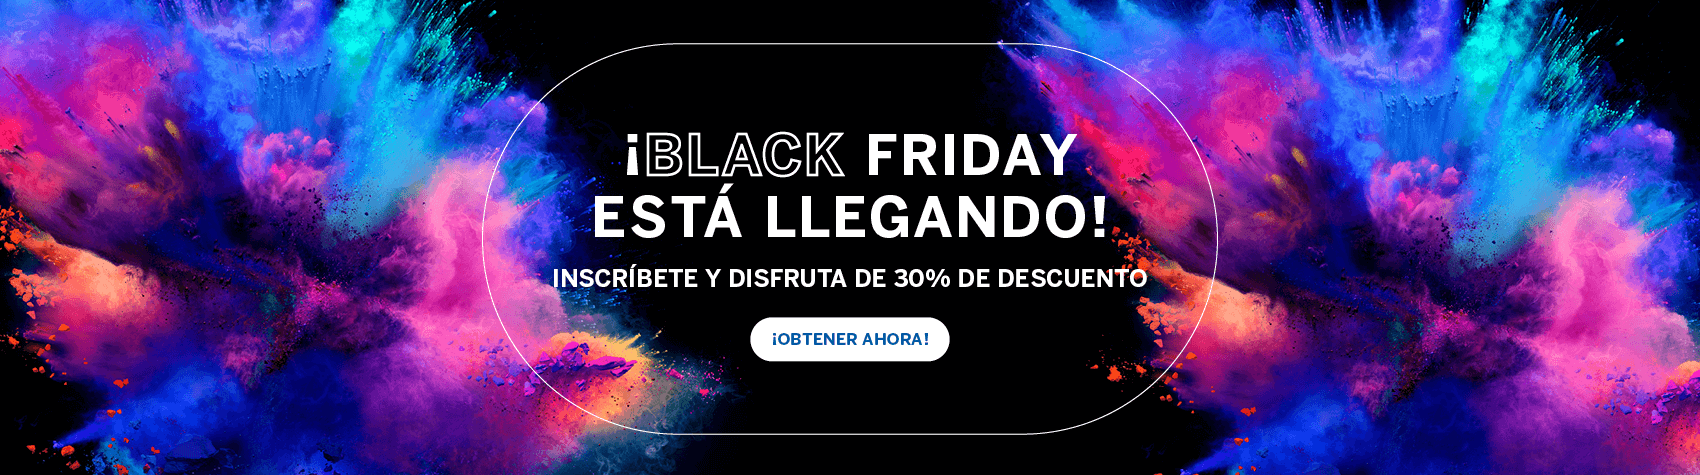 Black Friday Esta Llegando